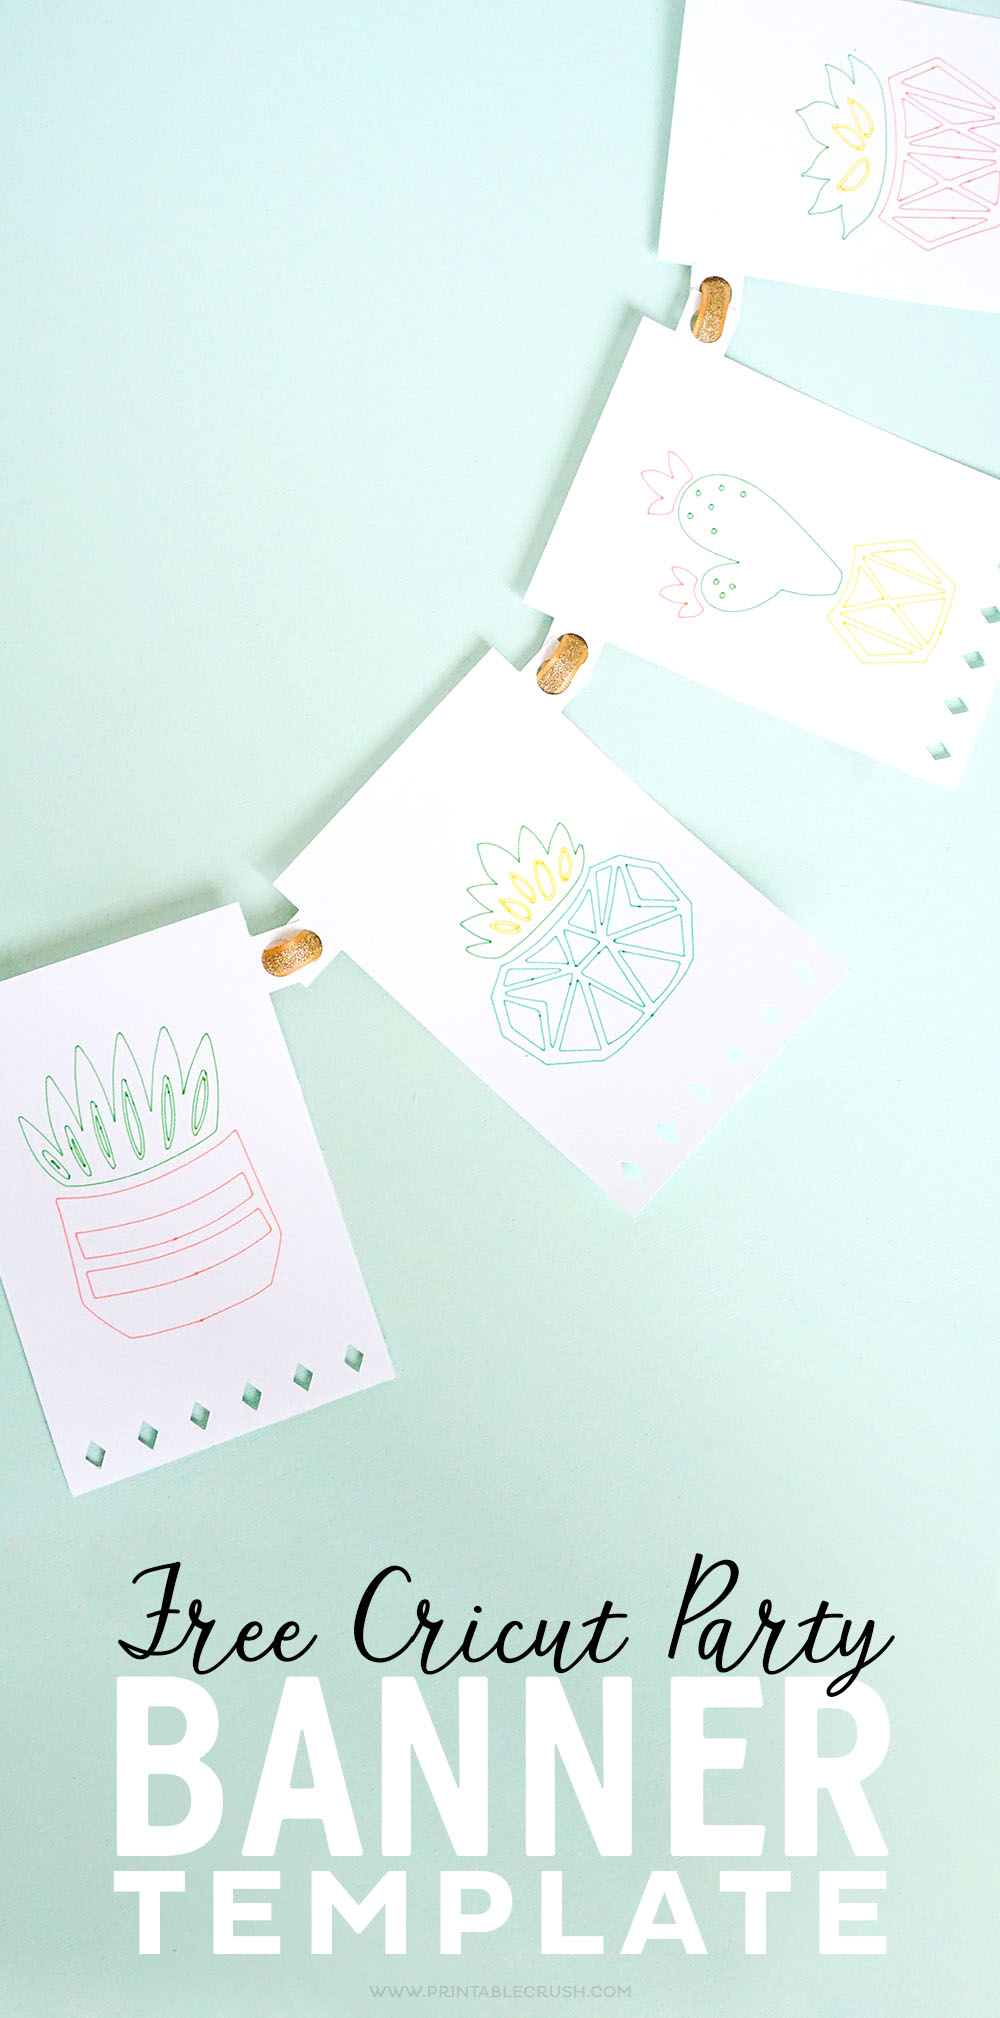 Make your own banner design with this free Cricut Party Banner Template